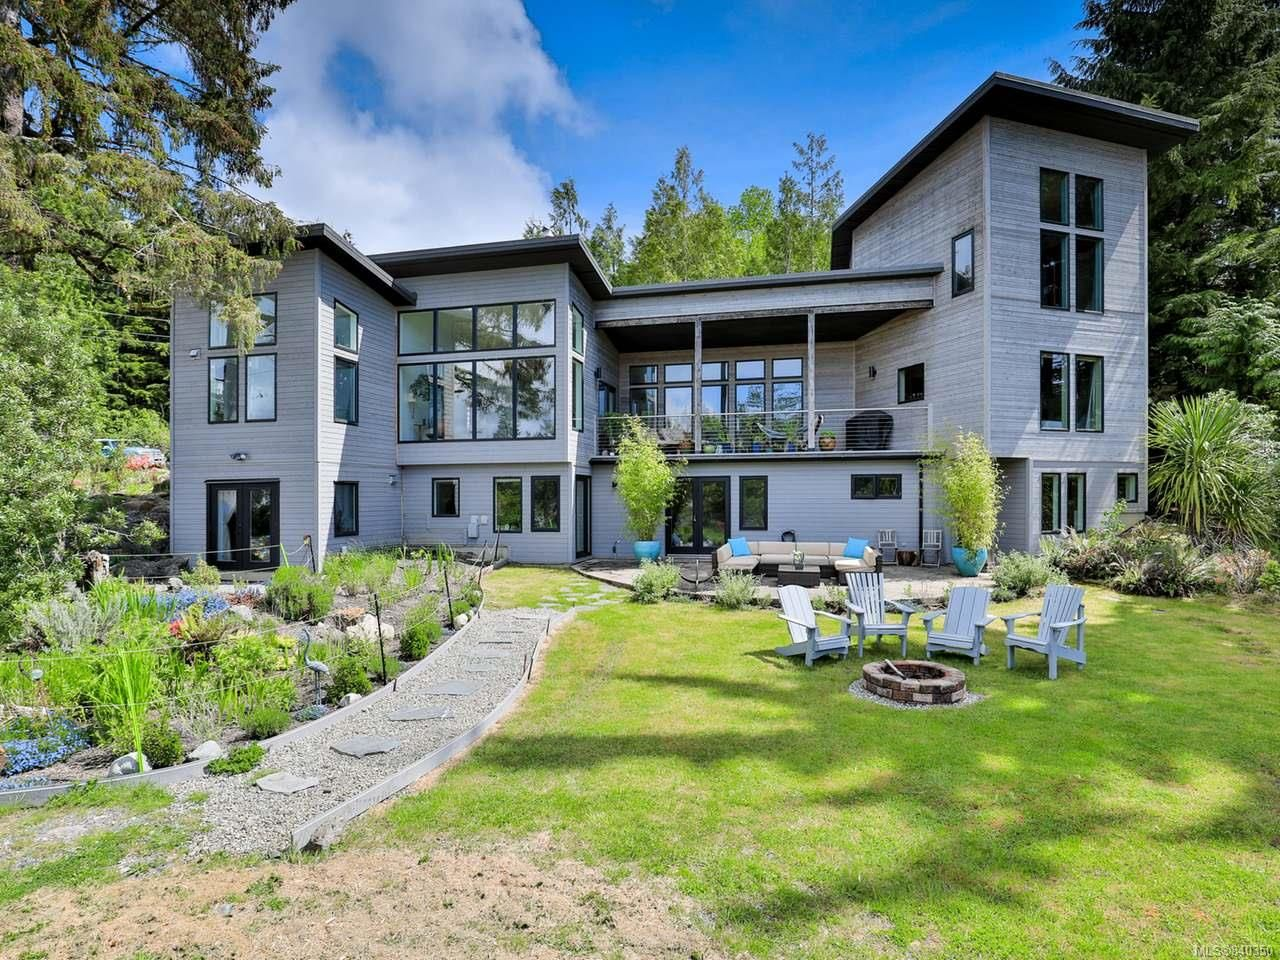 Photo 2: Photos: 1068 Helen Rd in UCLUELET: PA Ucluelet House for sale (Port Alberni)  : MLS®# 840350